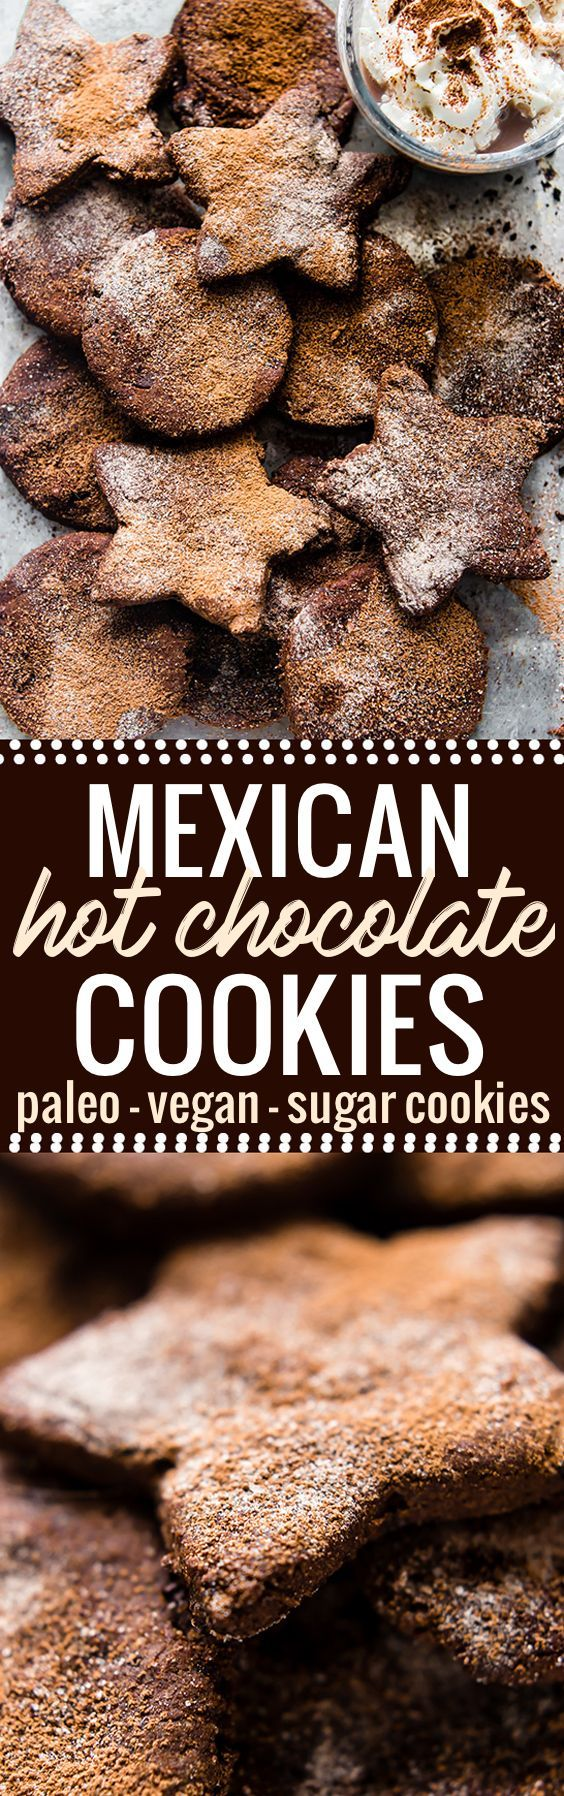 These Mexican Hot Chocolate Sugar Cookies are festive and easy to make! Mexican Hot Chocolate with cinnamon, cocoa, and a pinch chili spices are what make these Sugar cookies unreal good! Paleo and vegan friendly, no butter or dairy needed. So good for ho